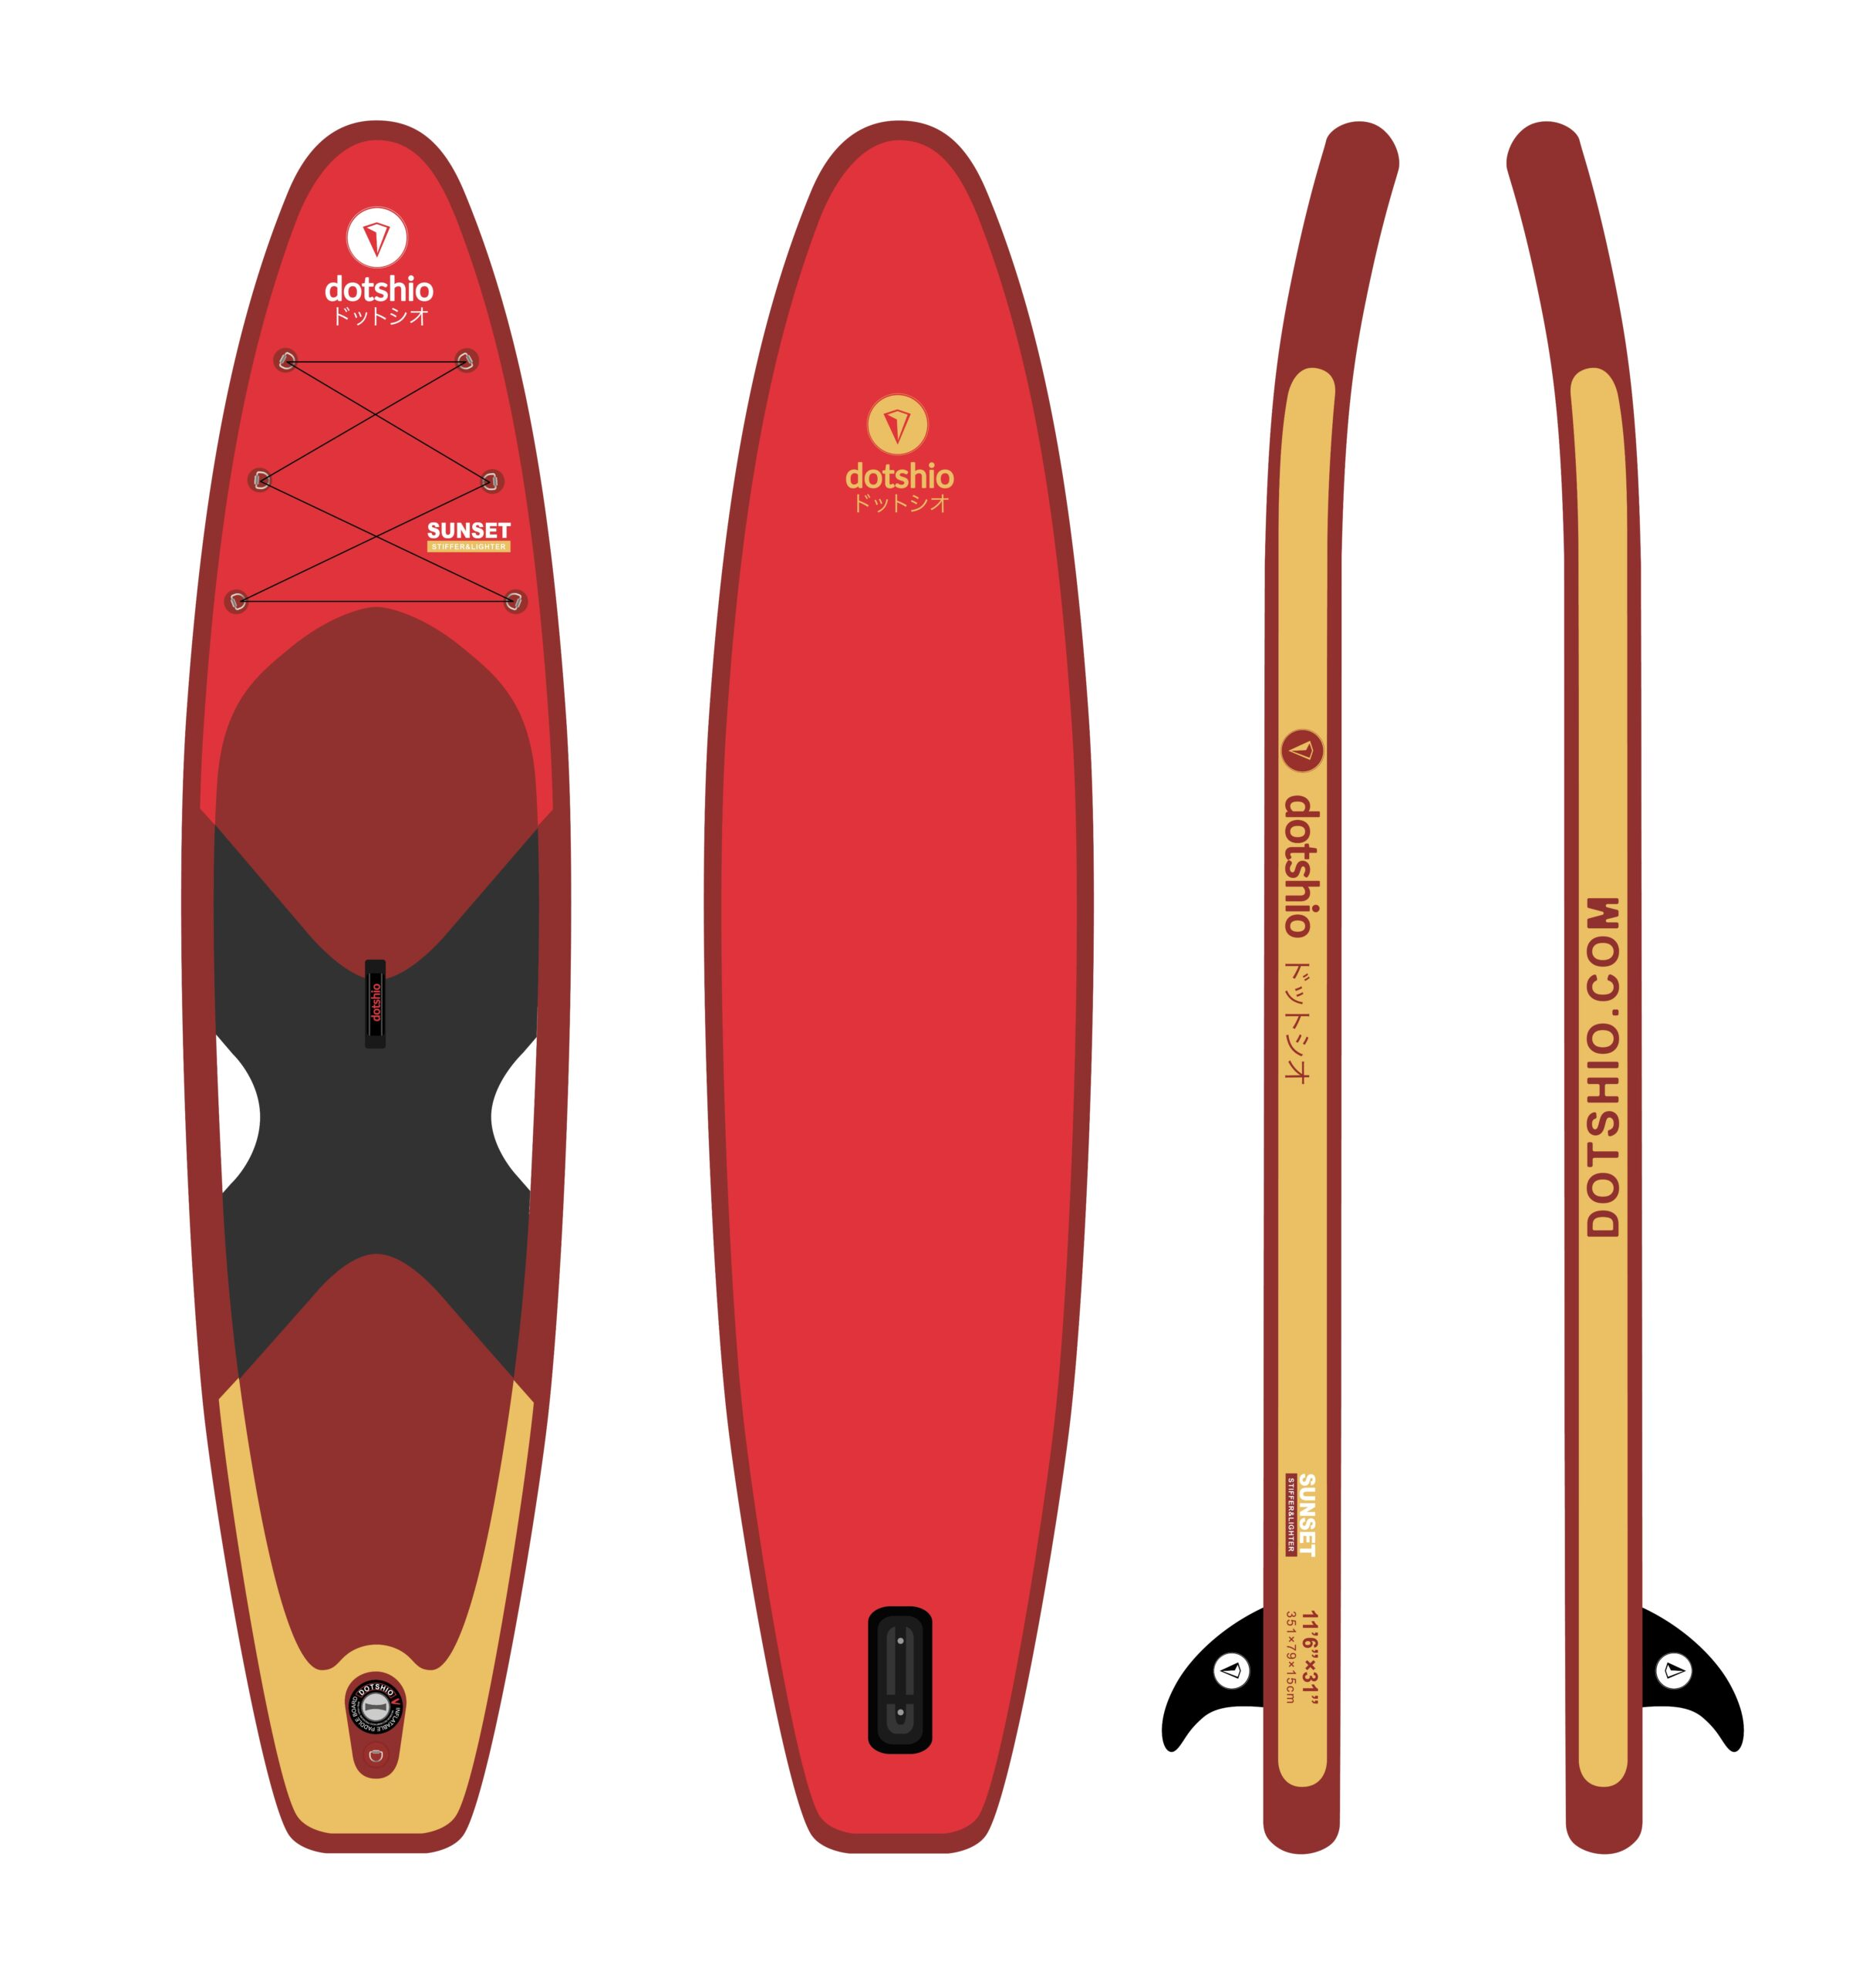 dotshio_Sunset_boards_INFLATABLE_PADDLE_SURF_BOARDS_SEA_touring